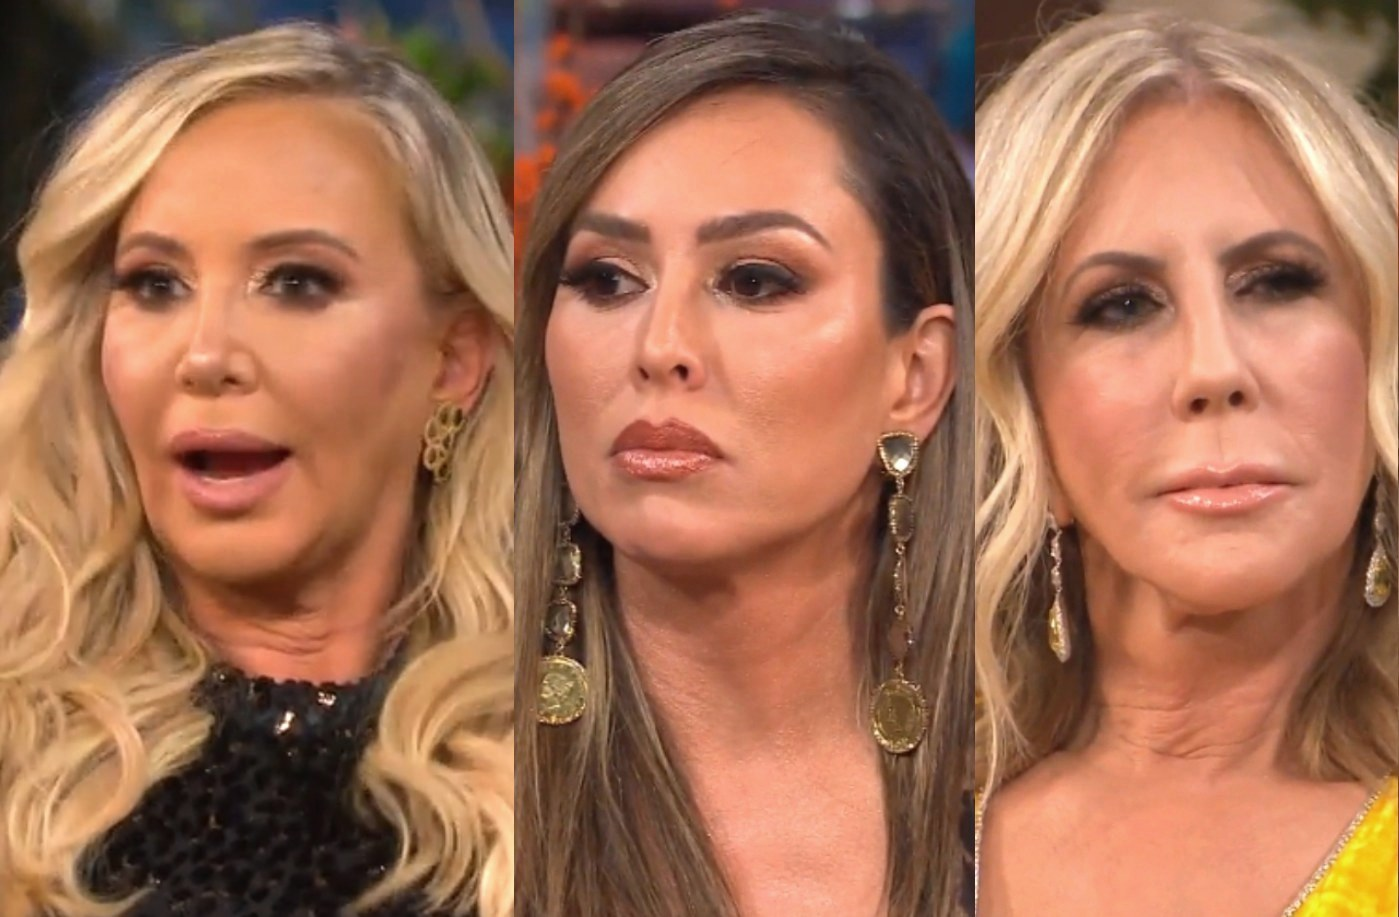 RHOC' Reunion: Vicki Gunvalson Accuses Braunwnyn Of 'Demolishing' The Show